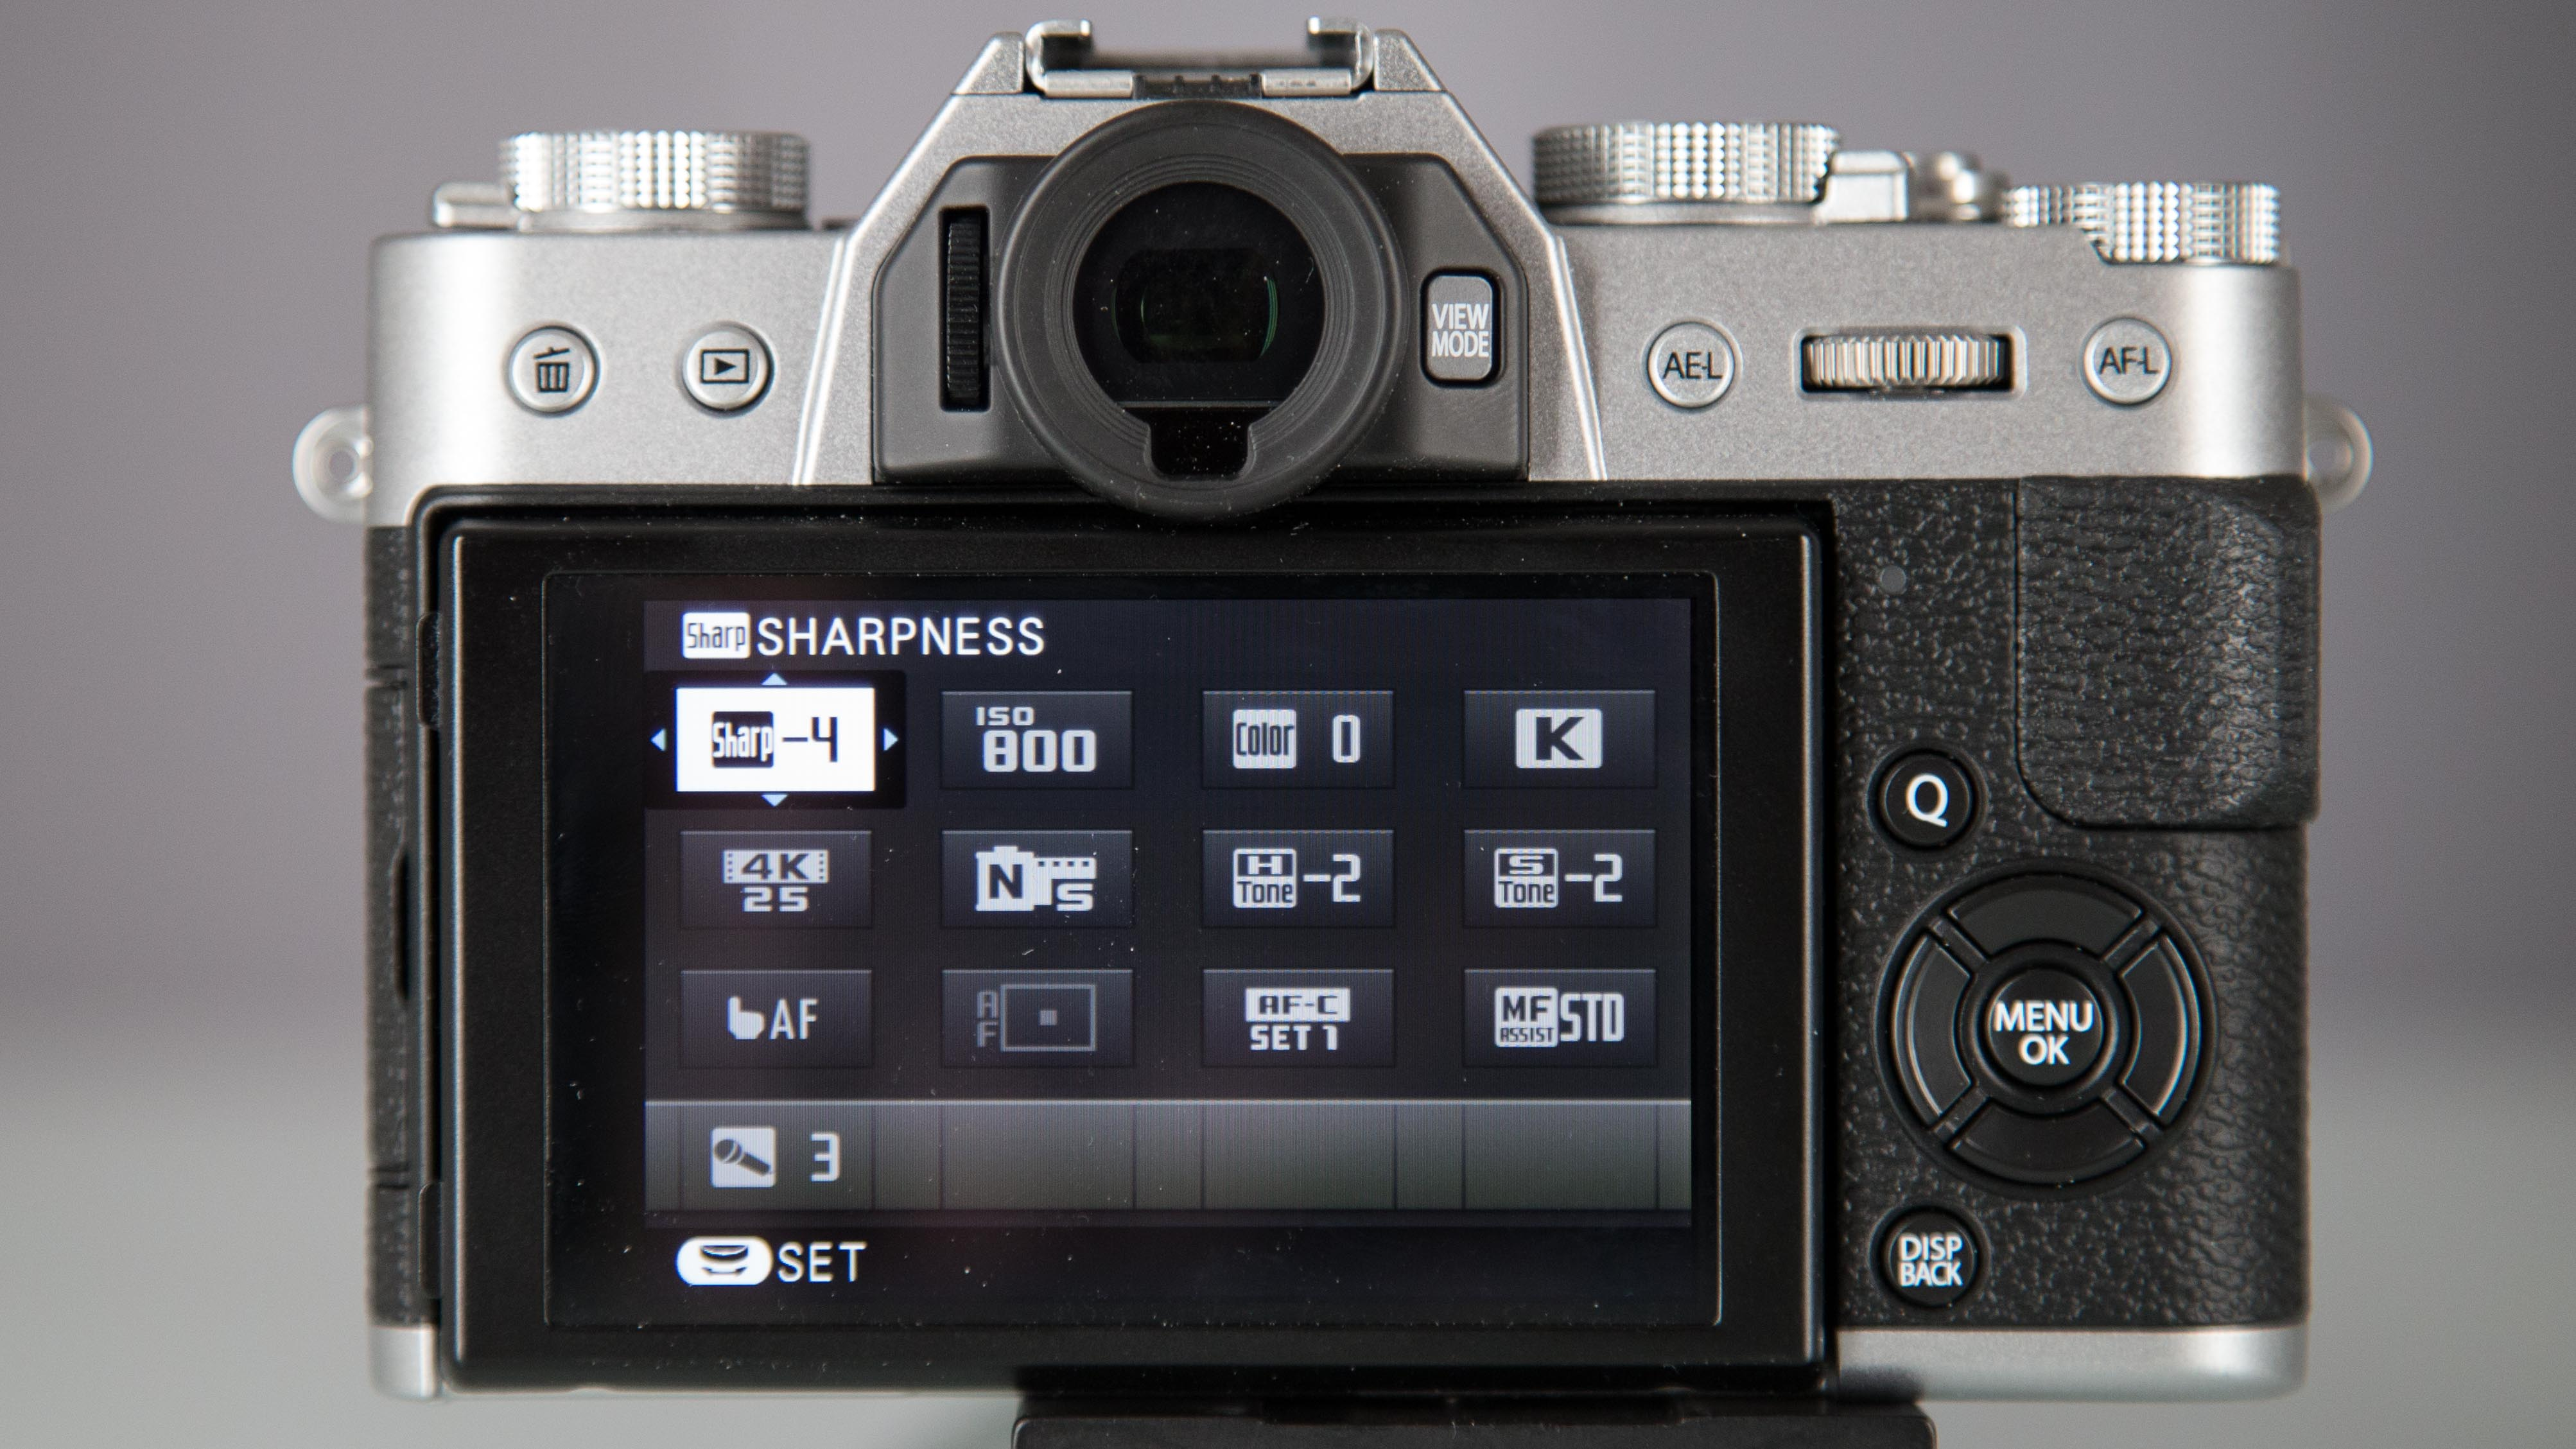 Fujifilm X T20 Review Real World Video Samples And First E3 Kit Xf 18 55mm Silver 35mm F2 Q Selected Settings Options